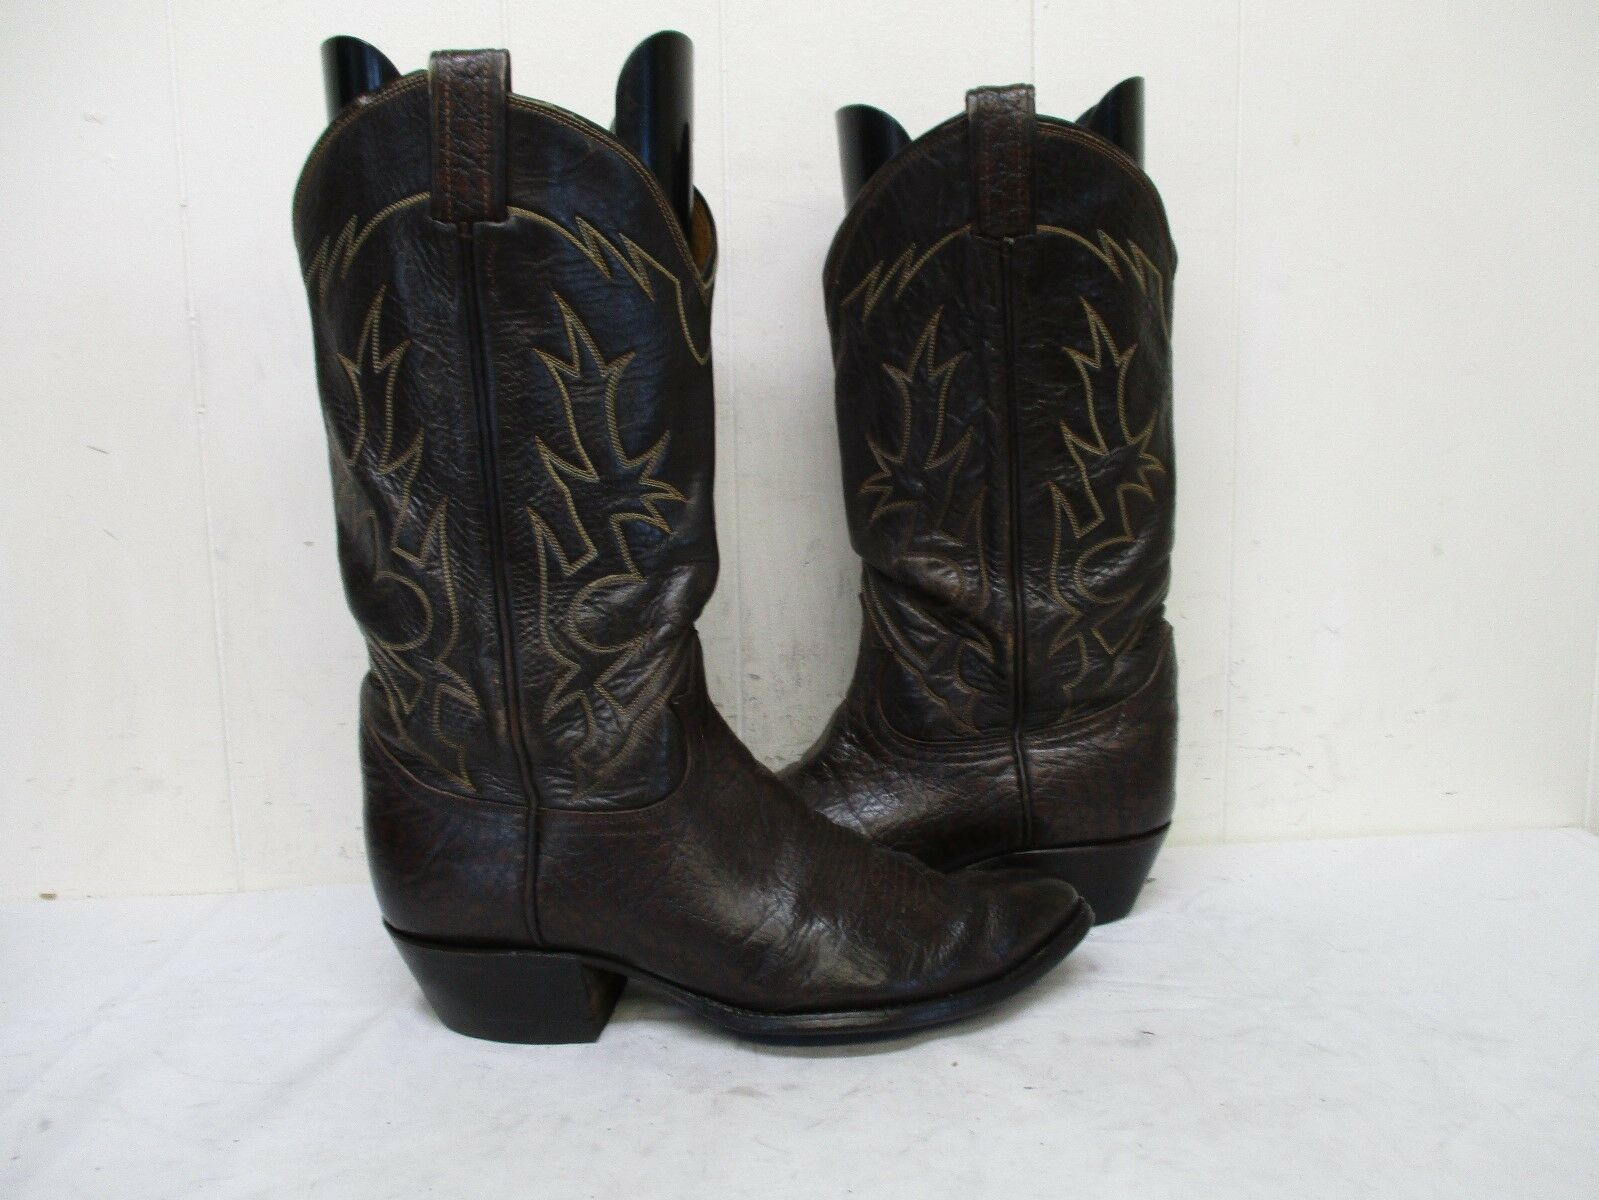 Tony Lama Brown Leather Cowboy Boots Mens Size 8.5 EE Style 6283 USA